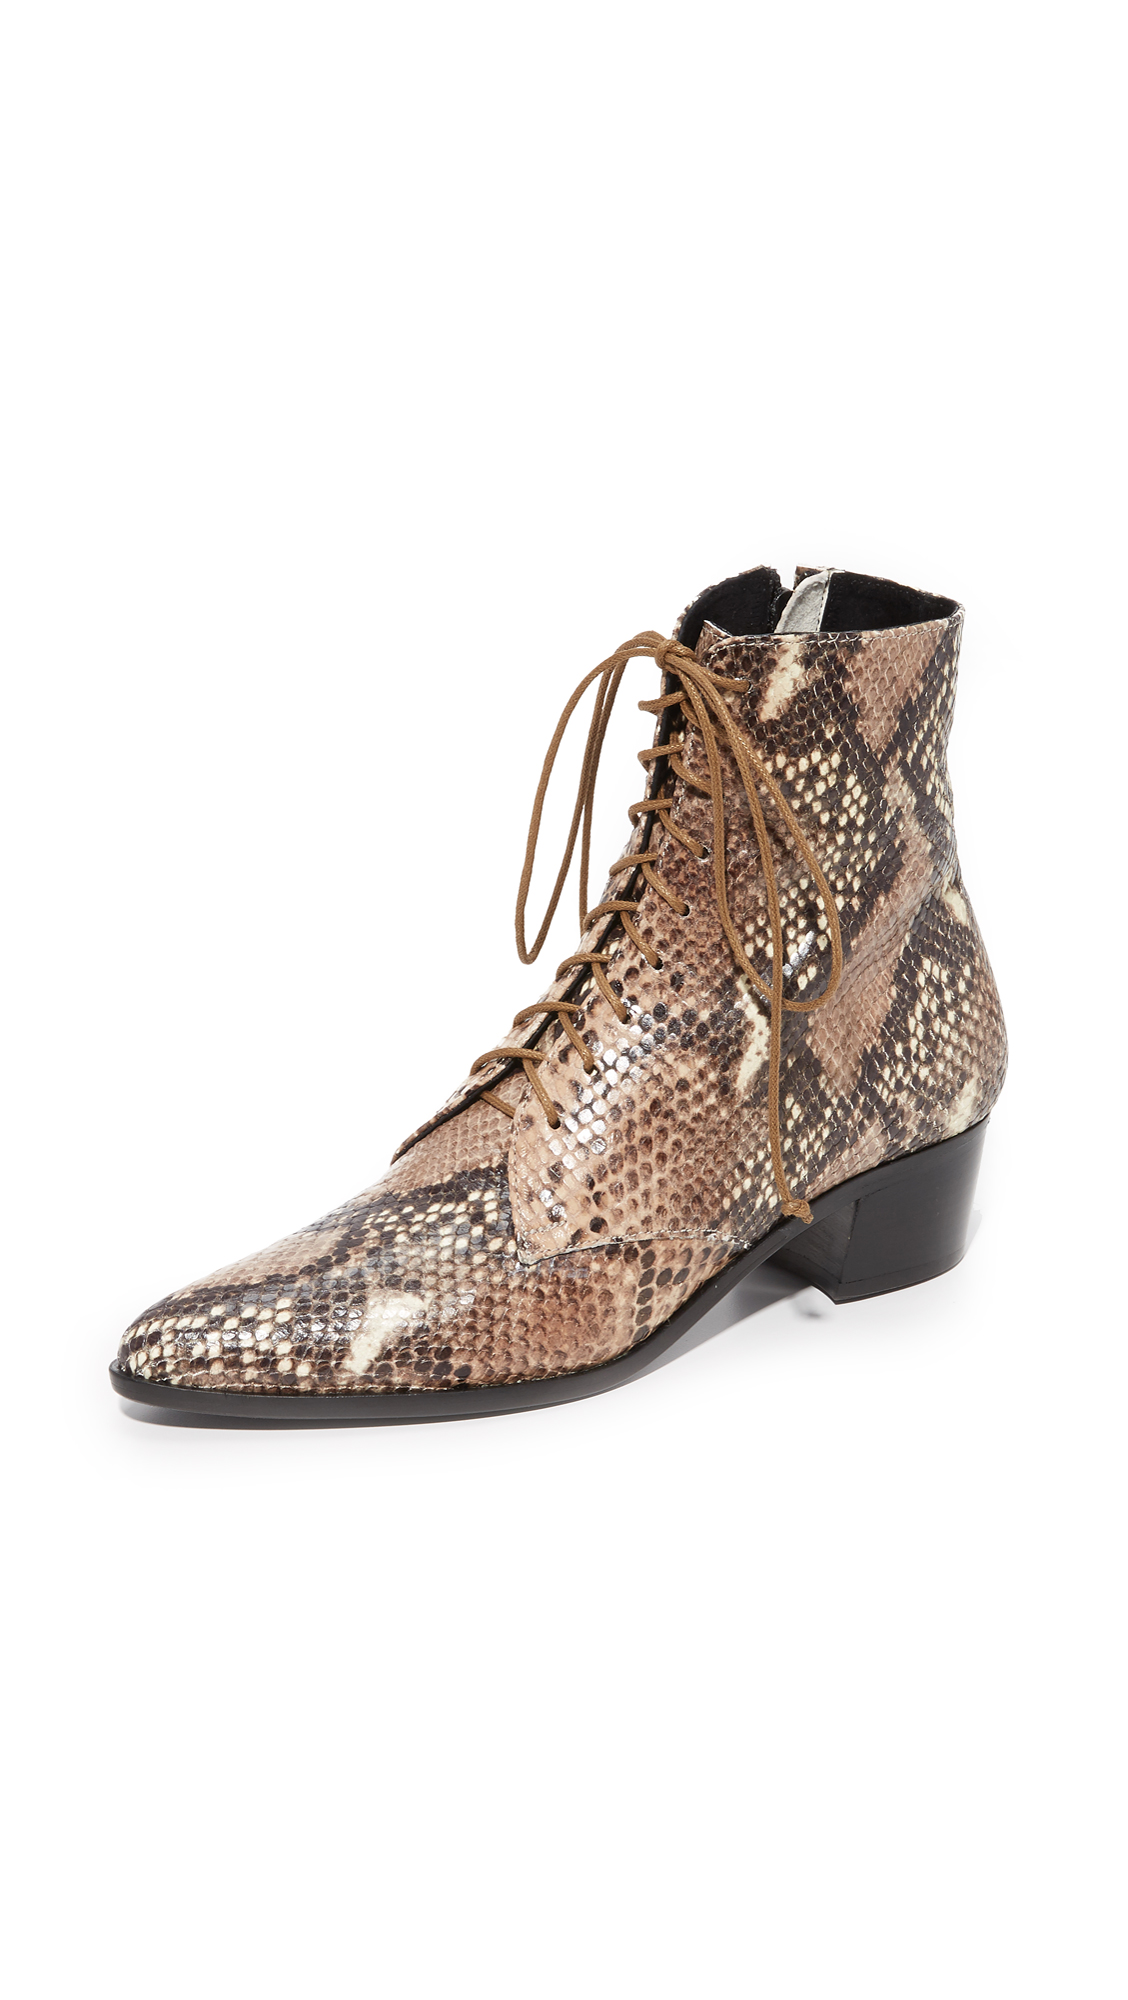 The Archive Barrow Lace Up Booties - Snake